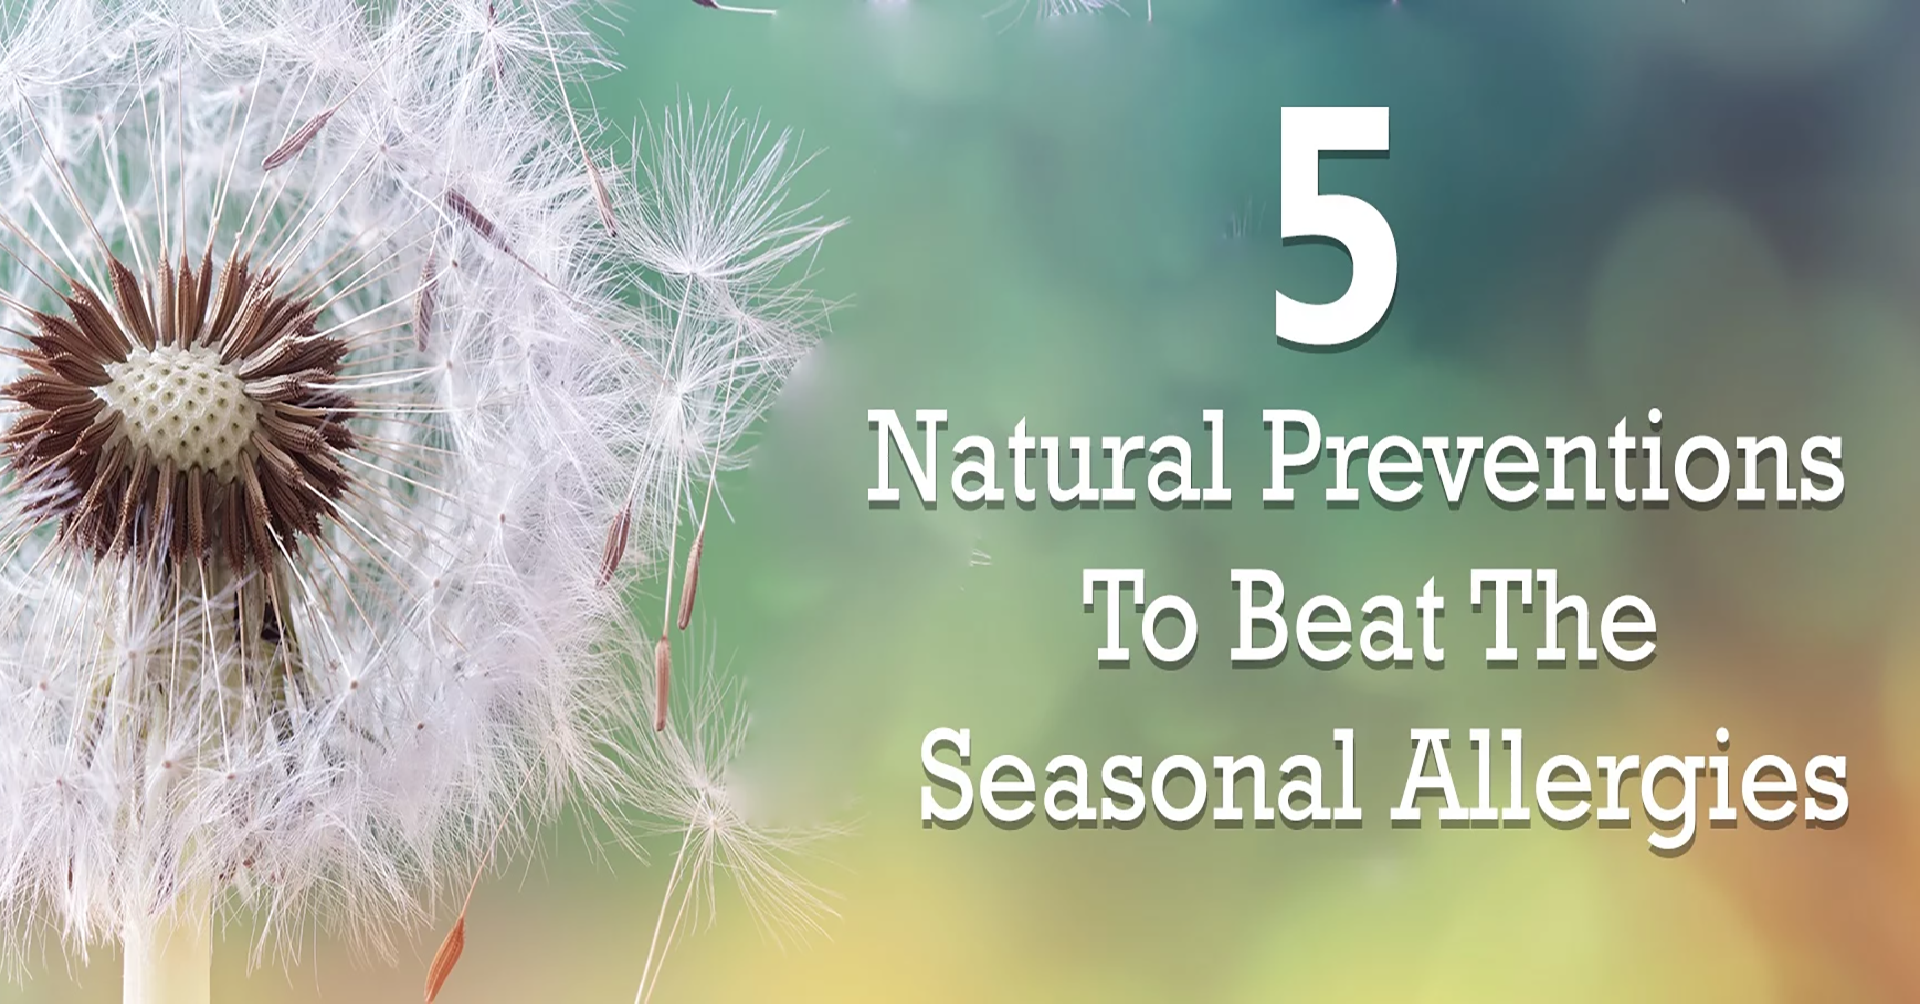 15) 5 NATURAL PREVENTION TO BEAT THE SEASONAL ALLERGIES